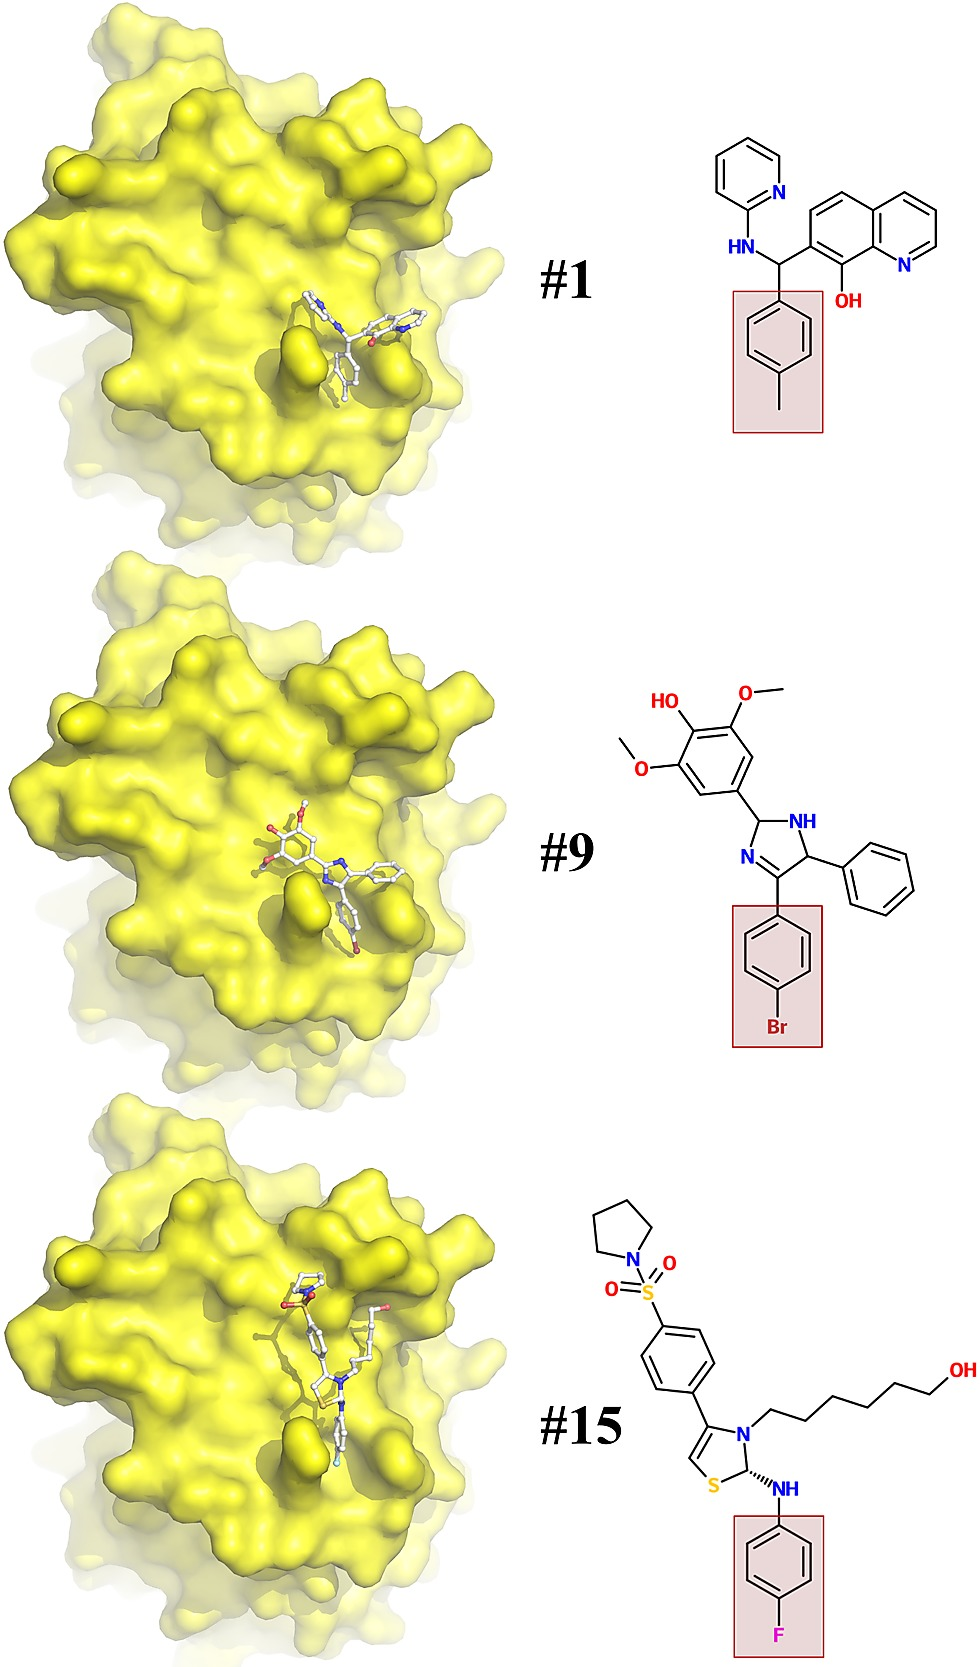 Crystal Structure Of The Vaccinia Virus Dna Polymerase Holoenzyme Original Hn 15 G Figshare